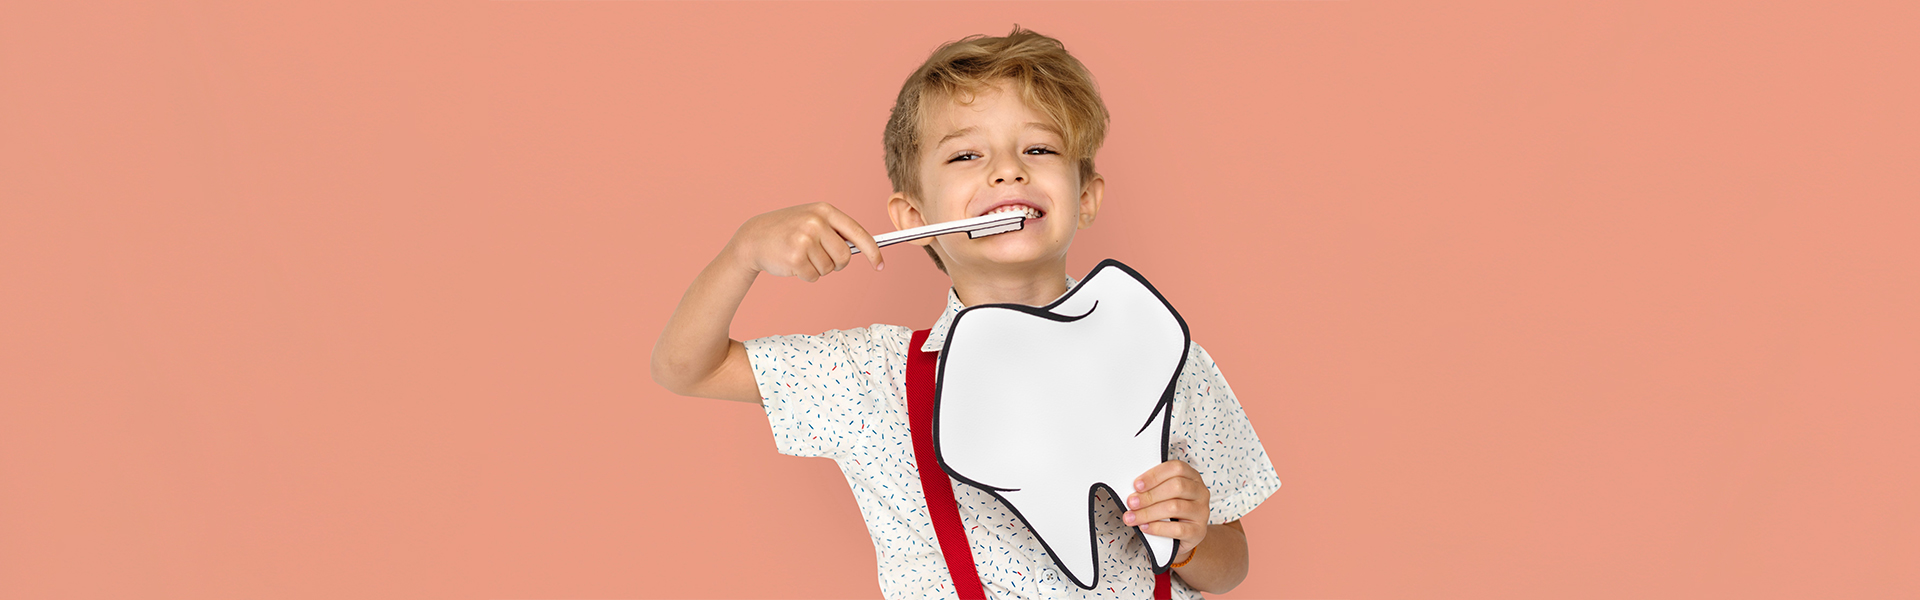 The Benefits of Pediatric Dentistry 2020 Can Give Your Kids a Lasting Smile